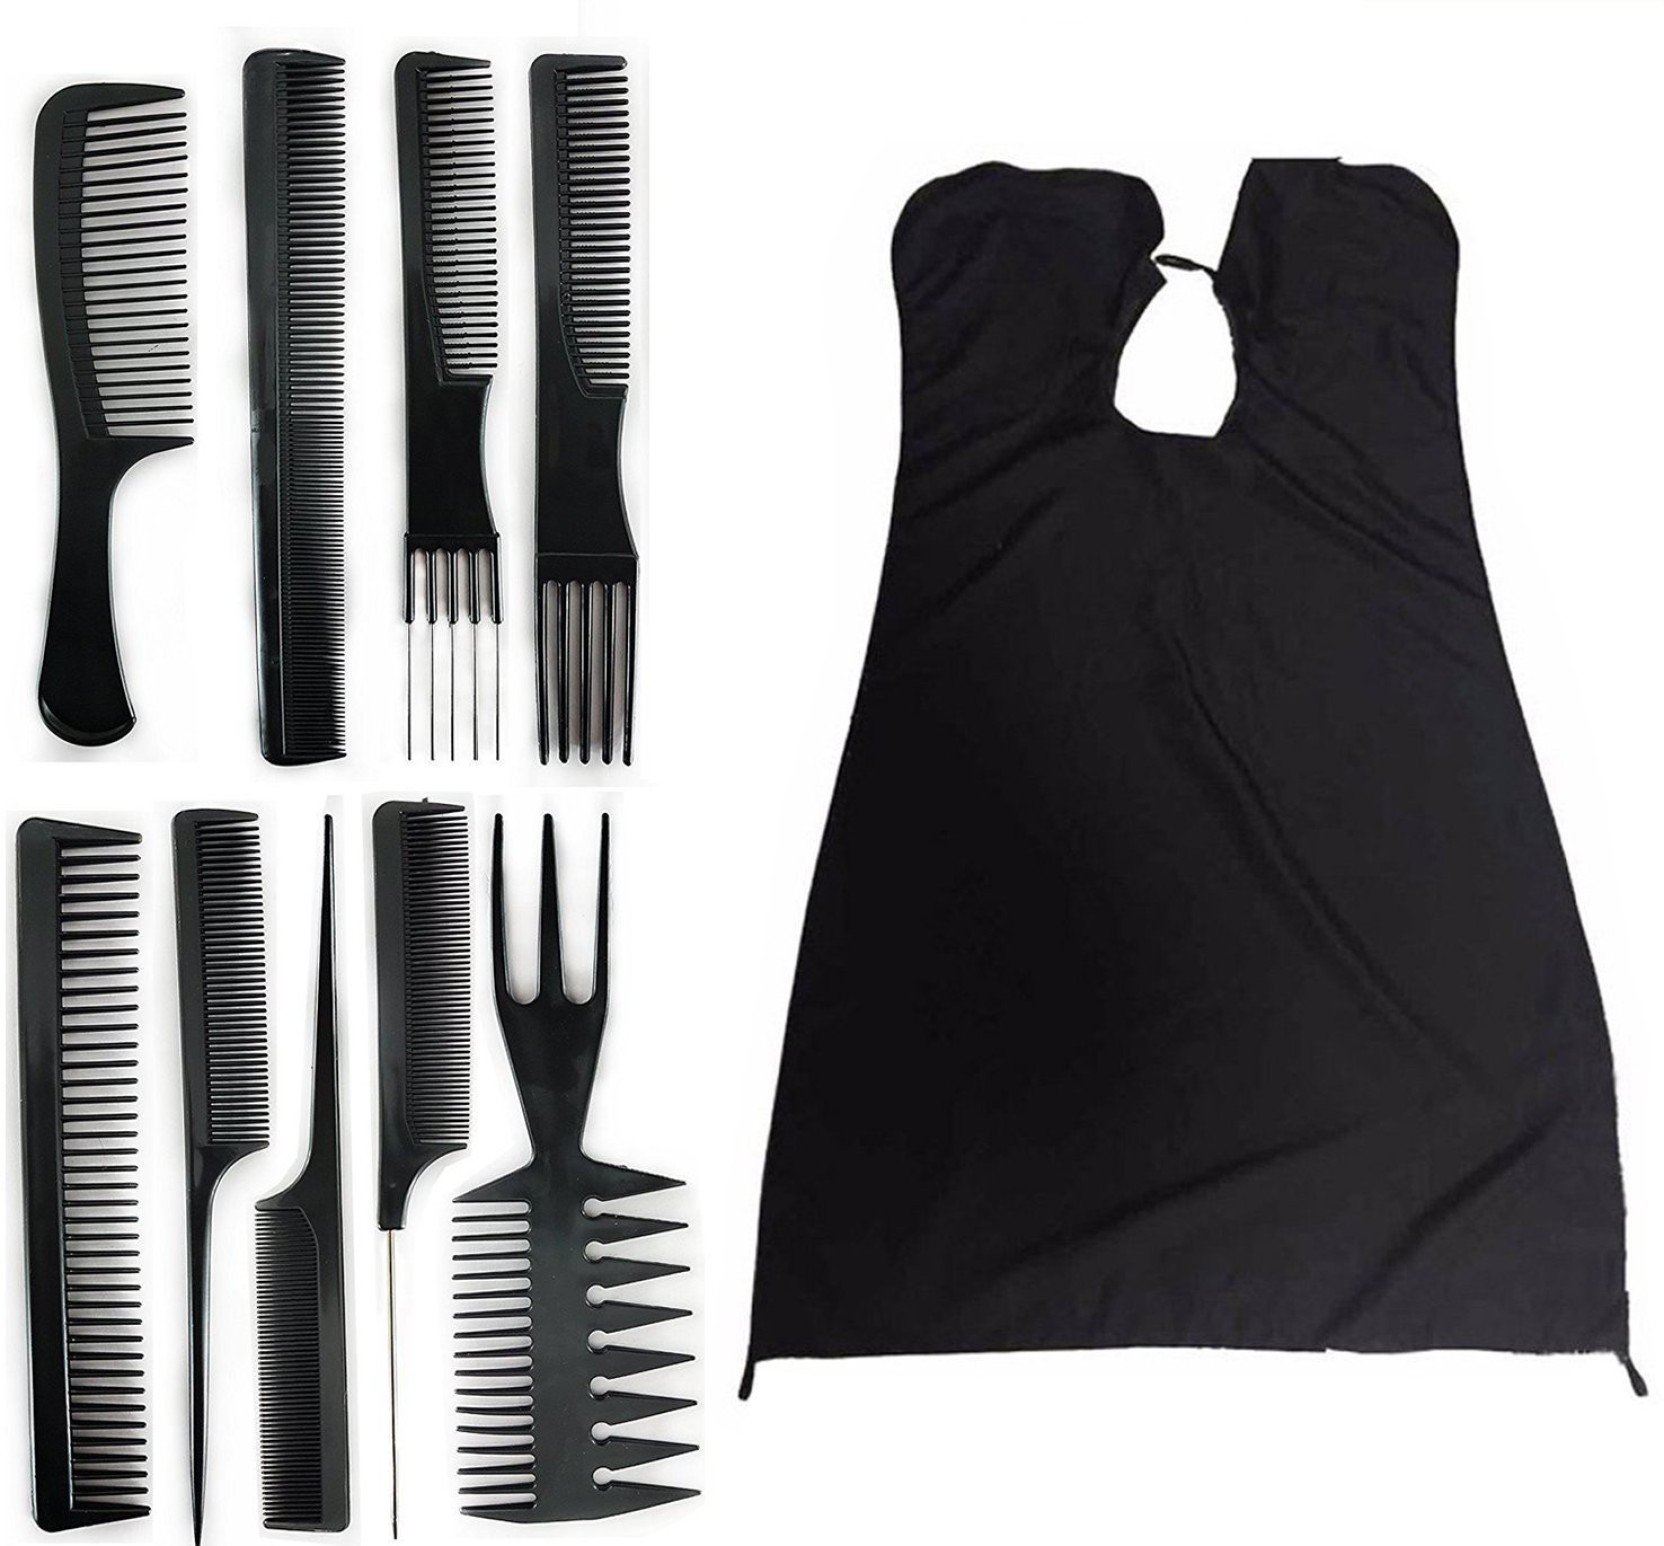 Hairdressers accessories - for smart hands